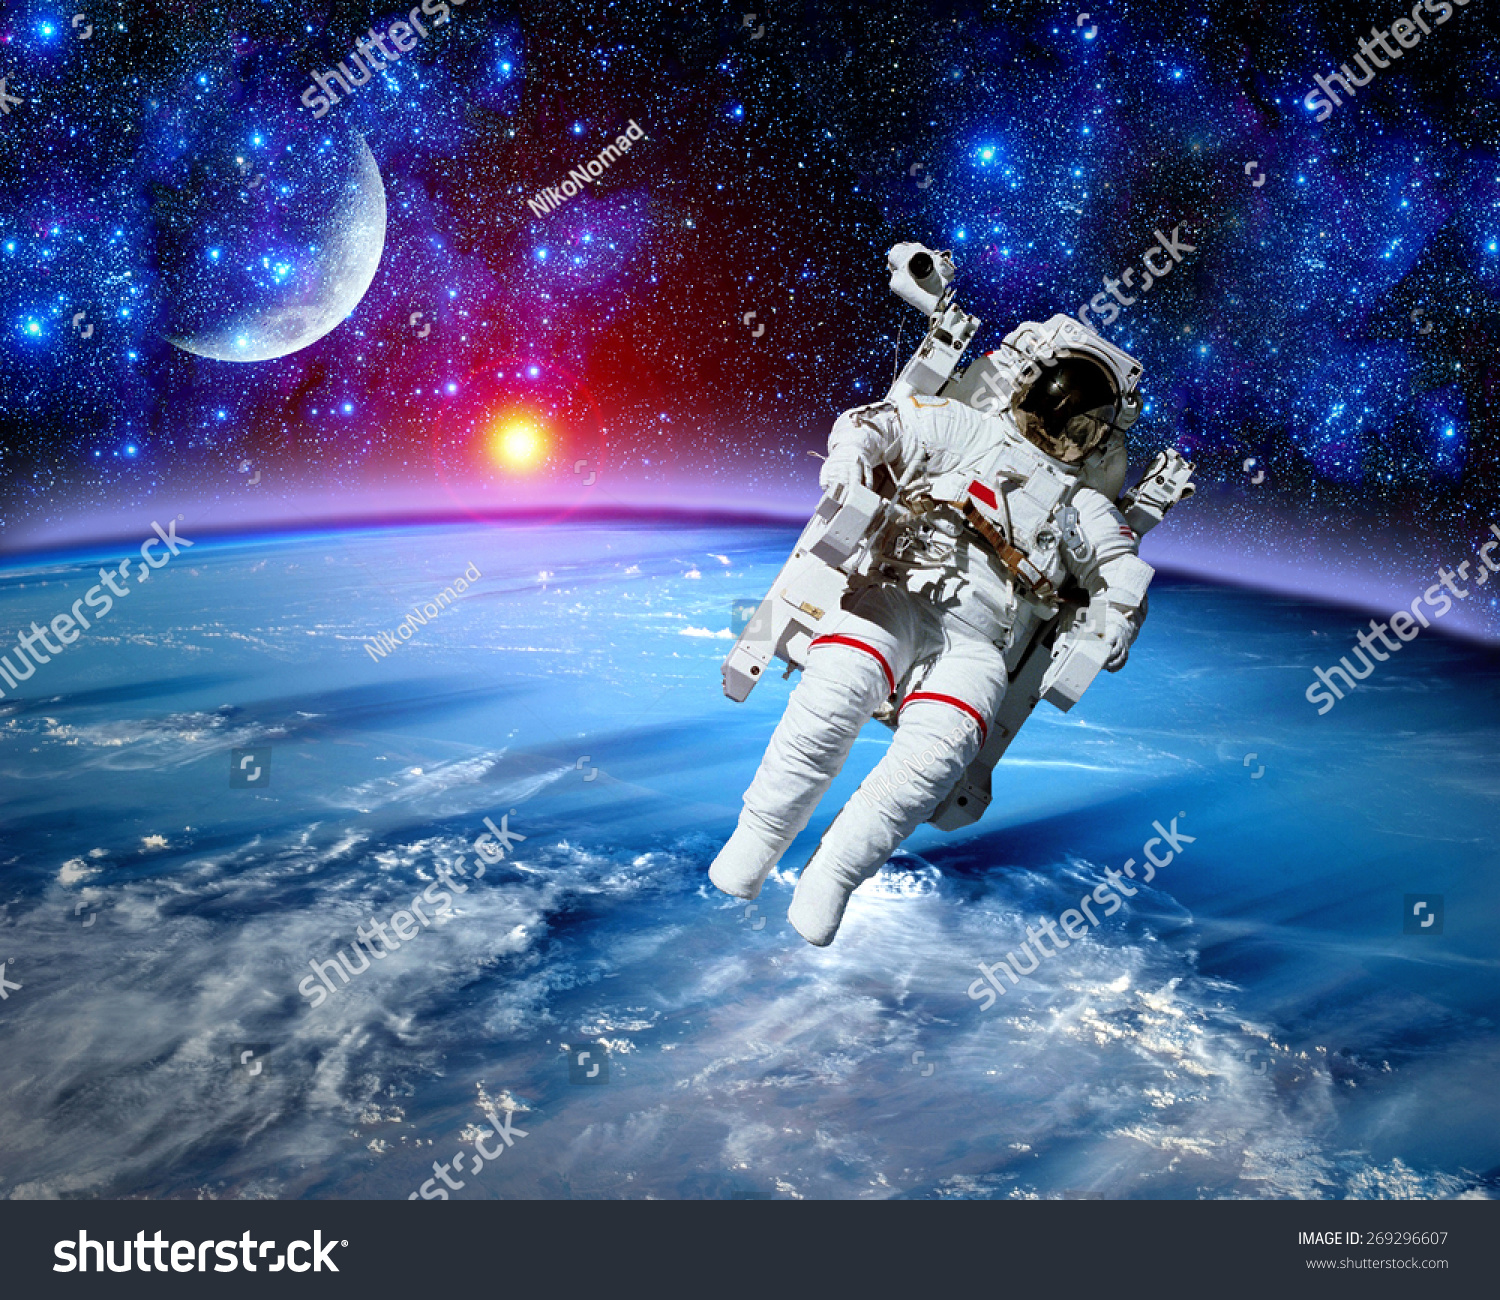 sunshine space suit - photo #34